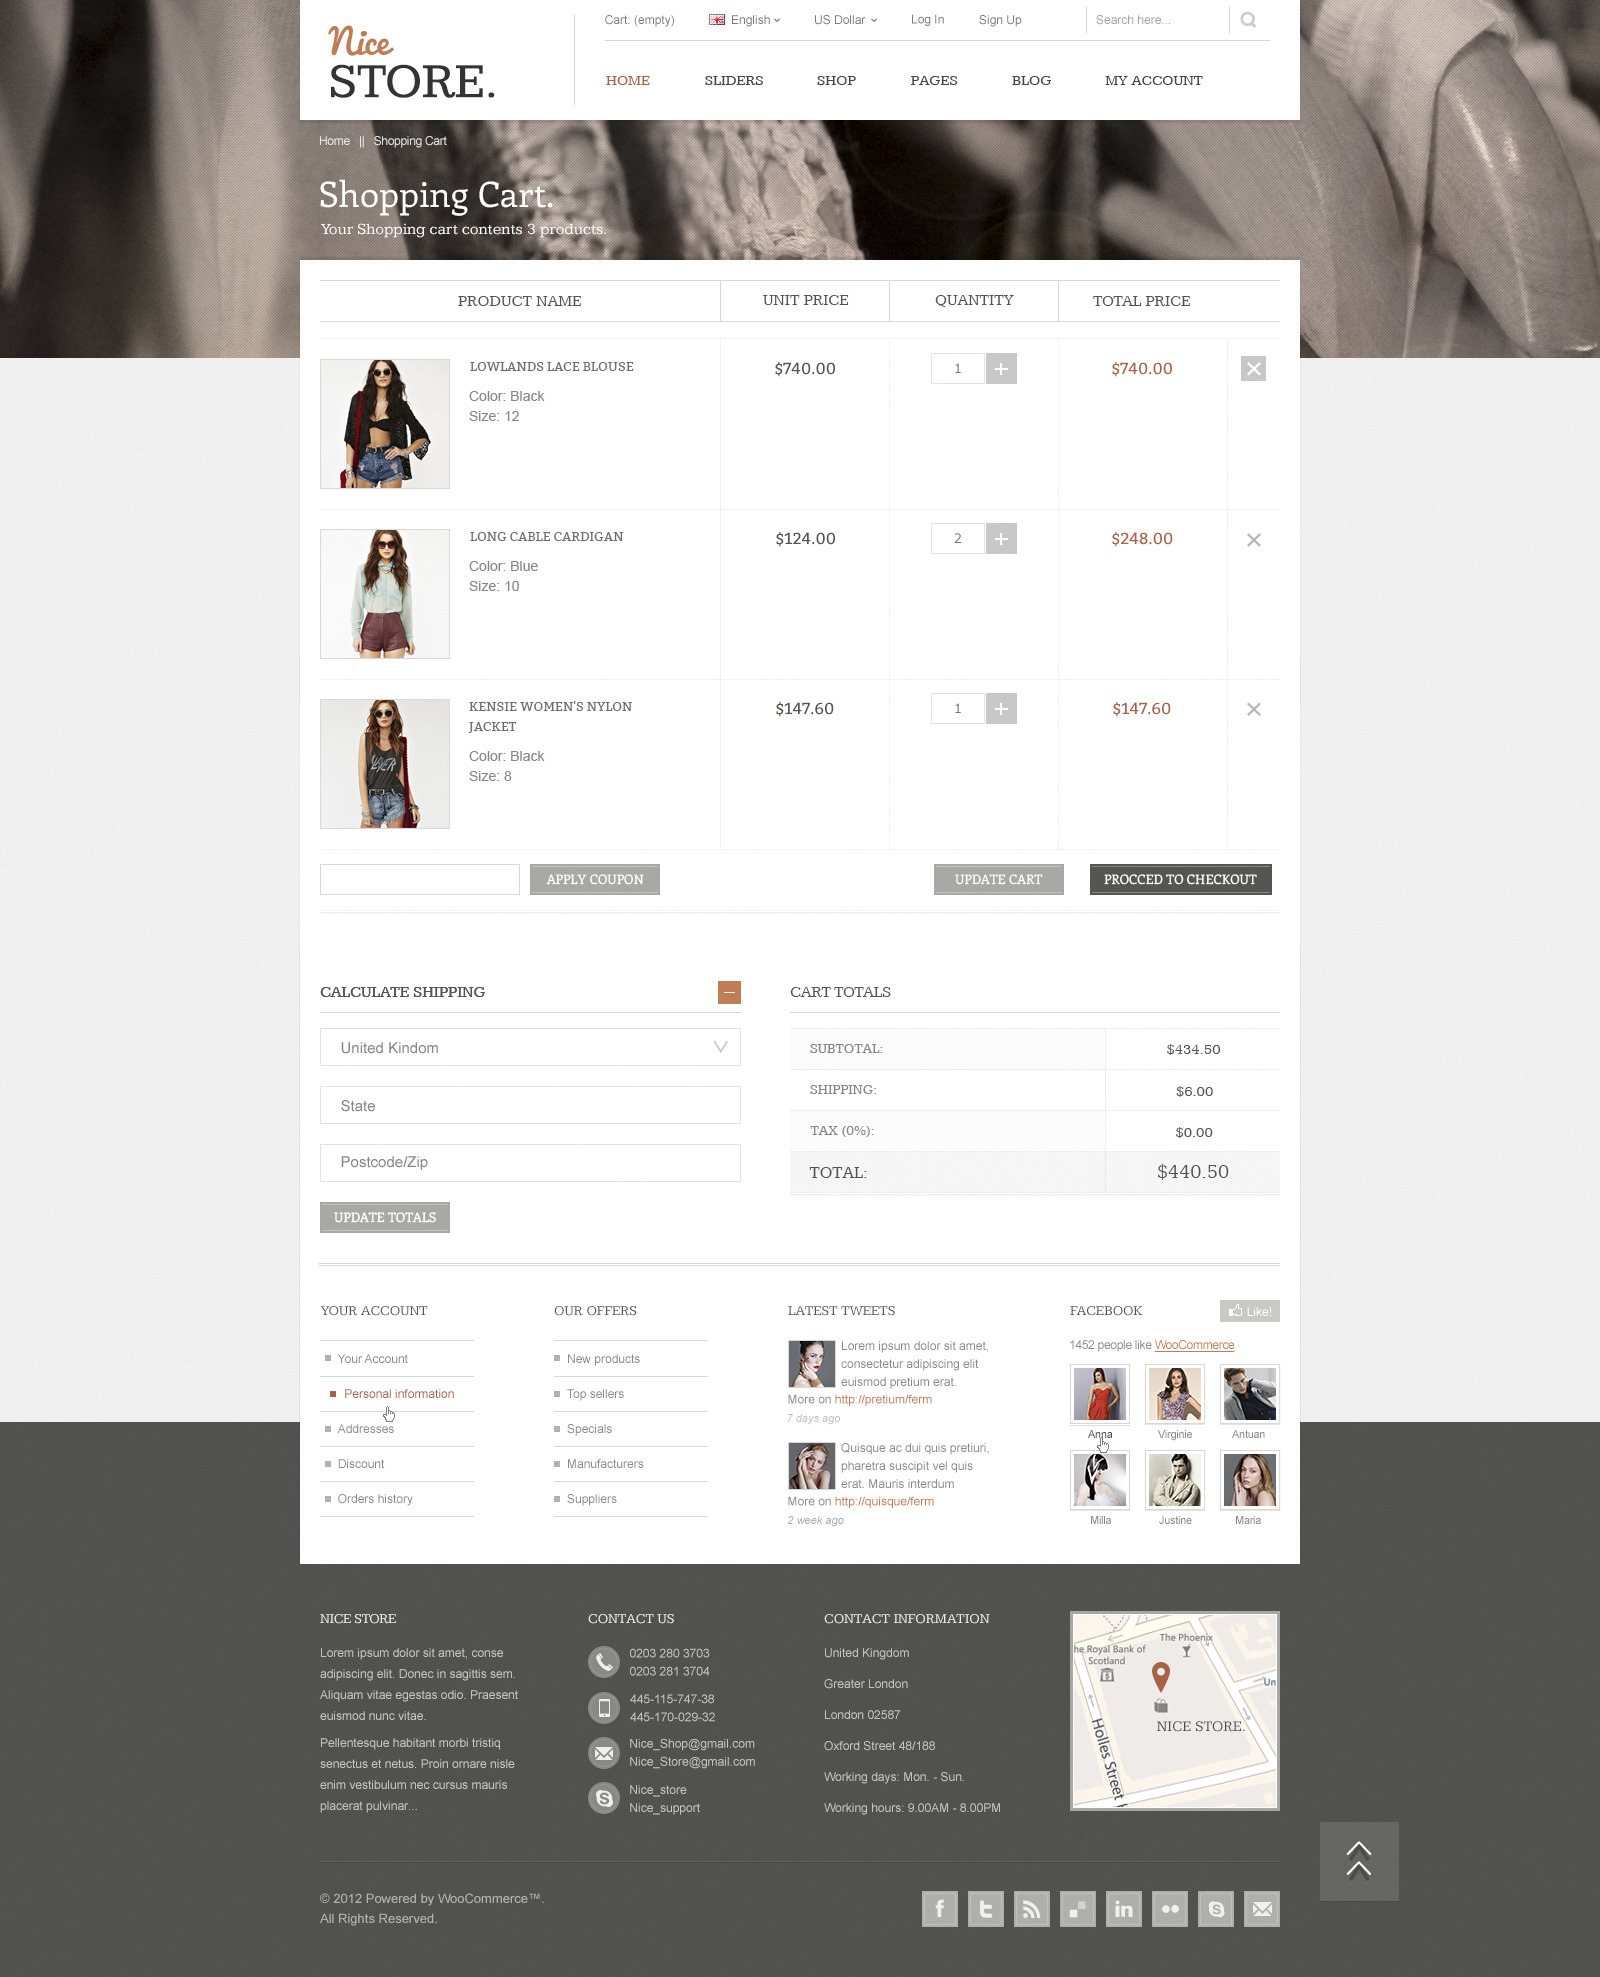 Nice Store - eCommerce PSD Template